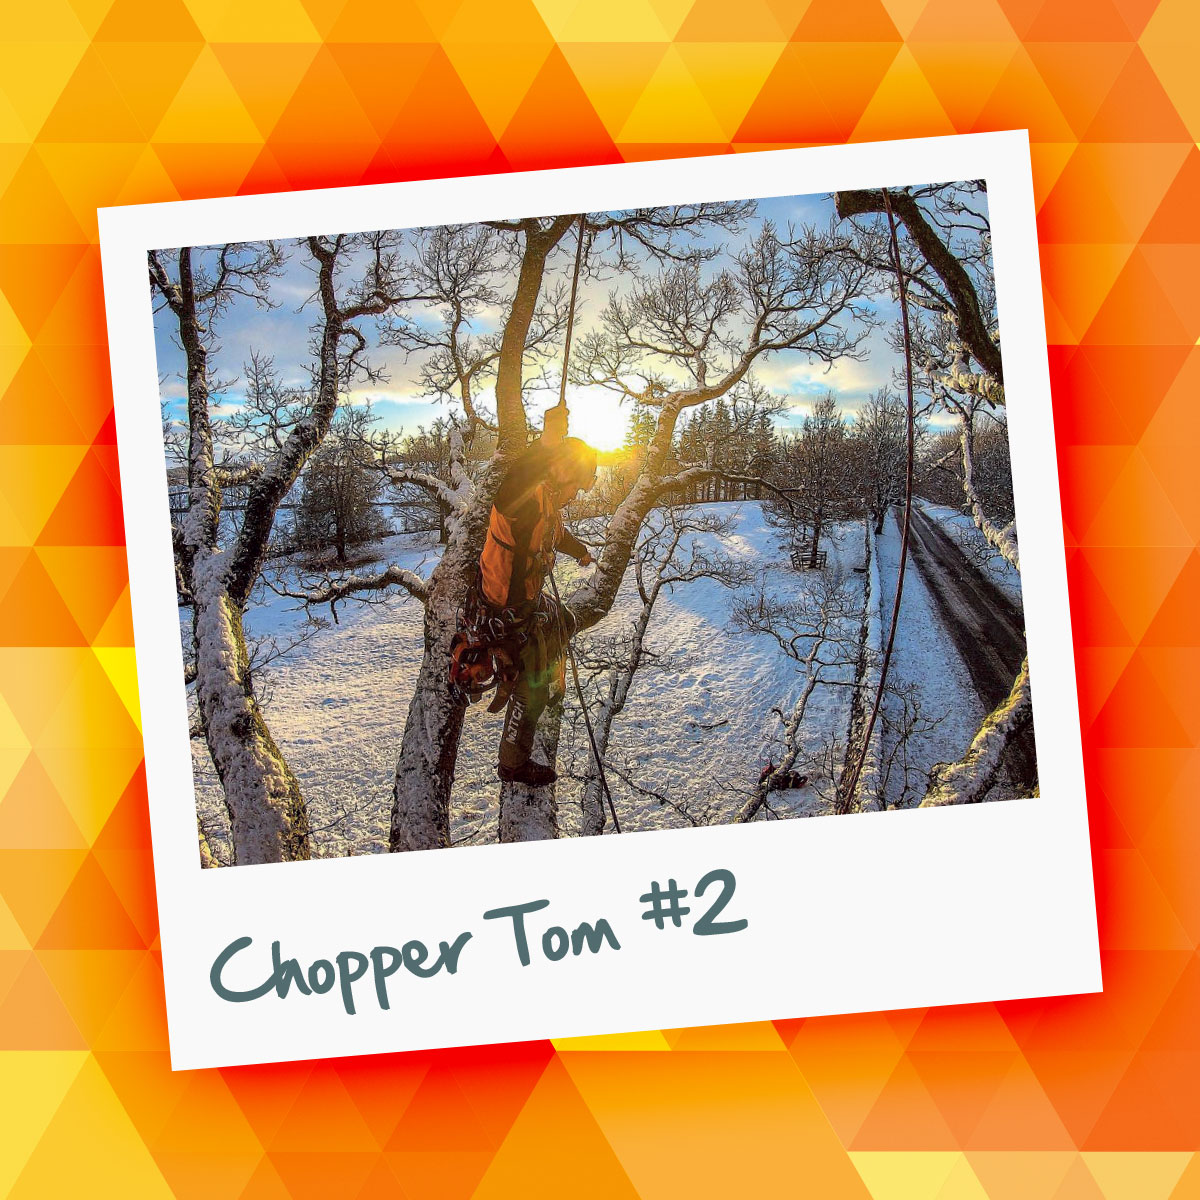 Chopper Tom #2